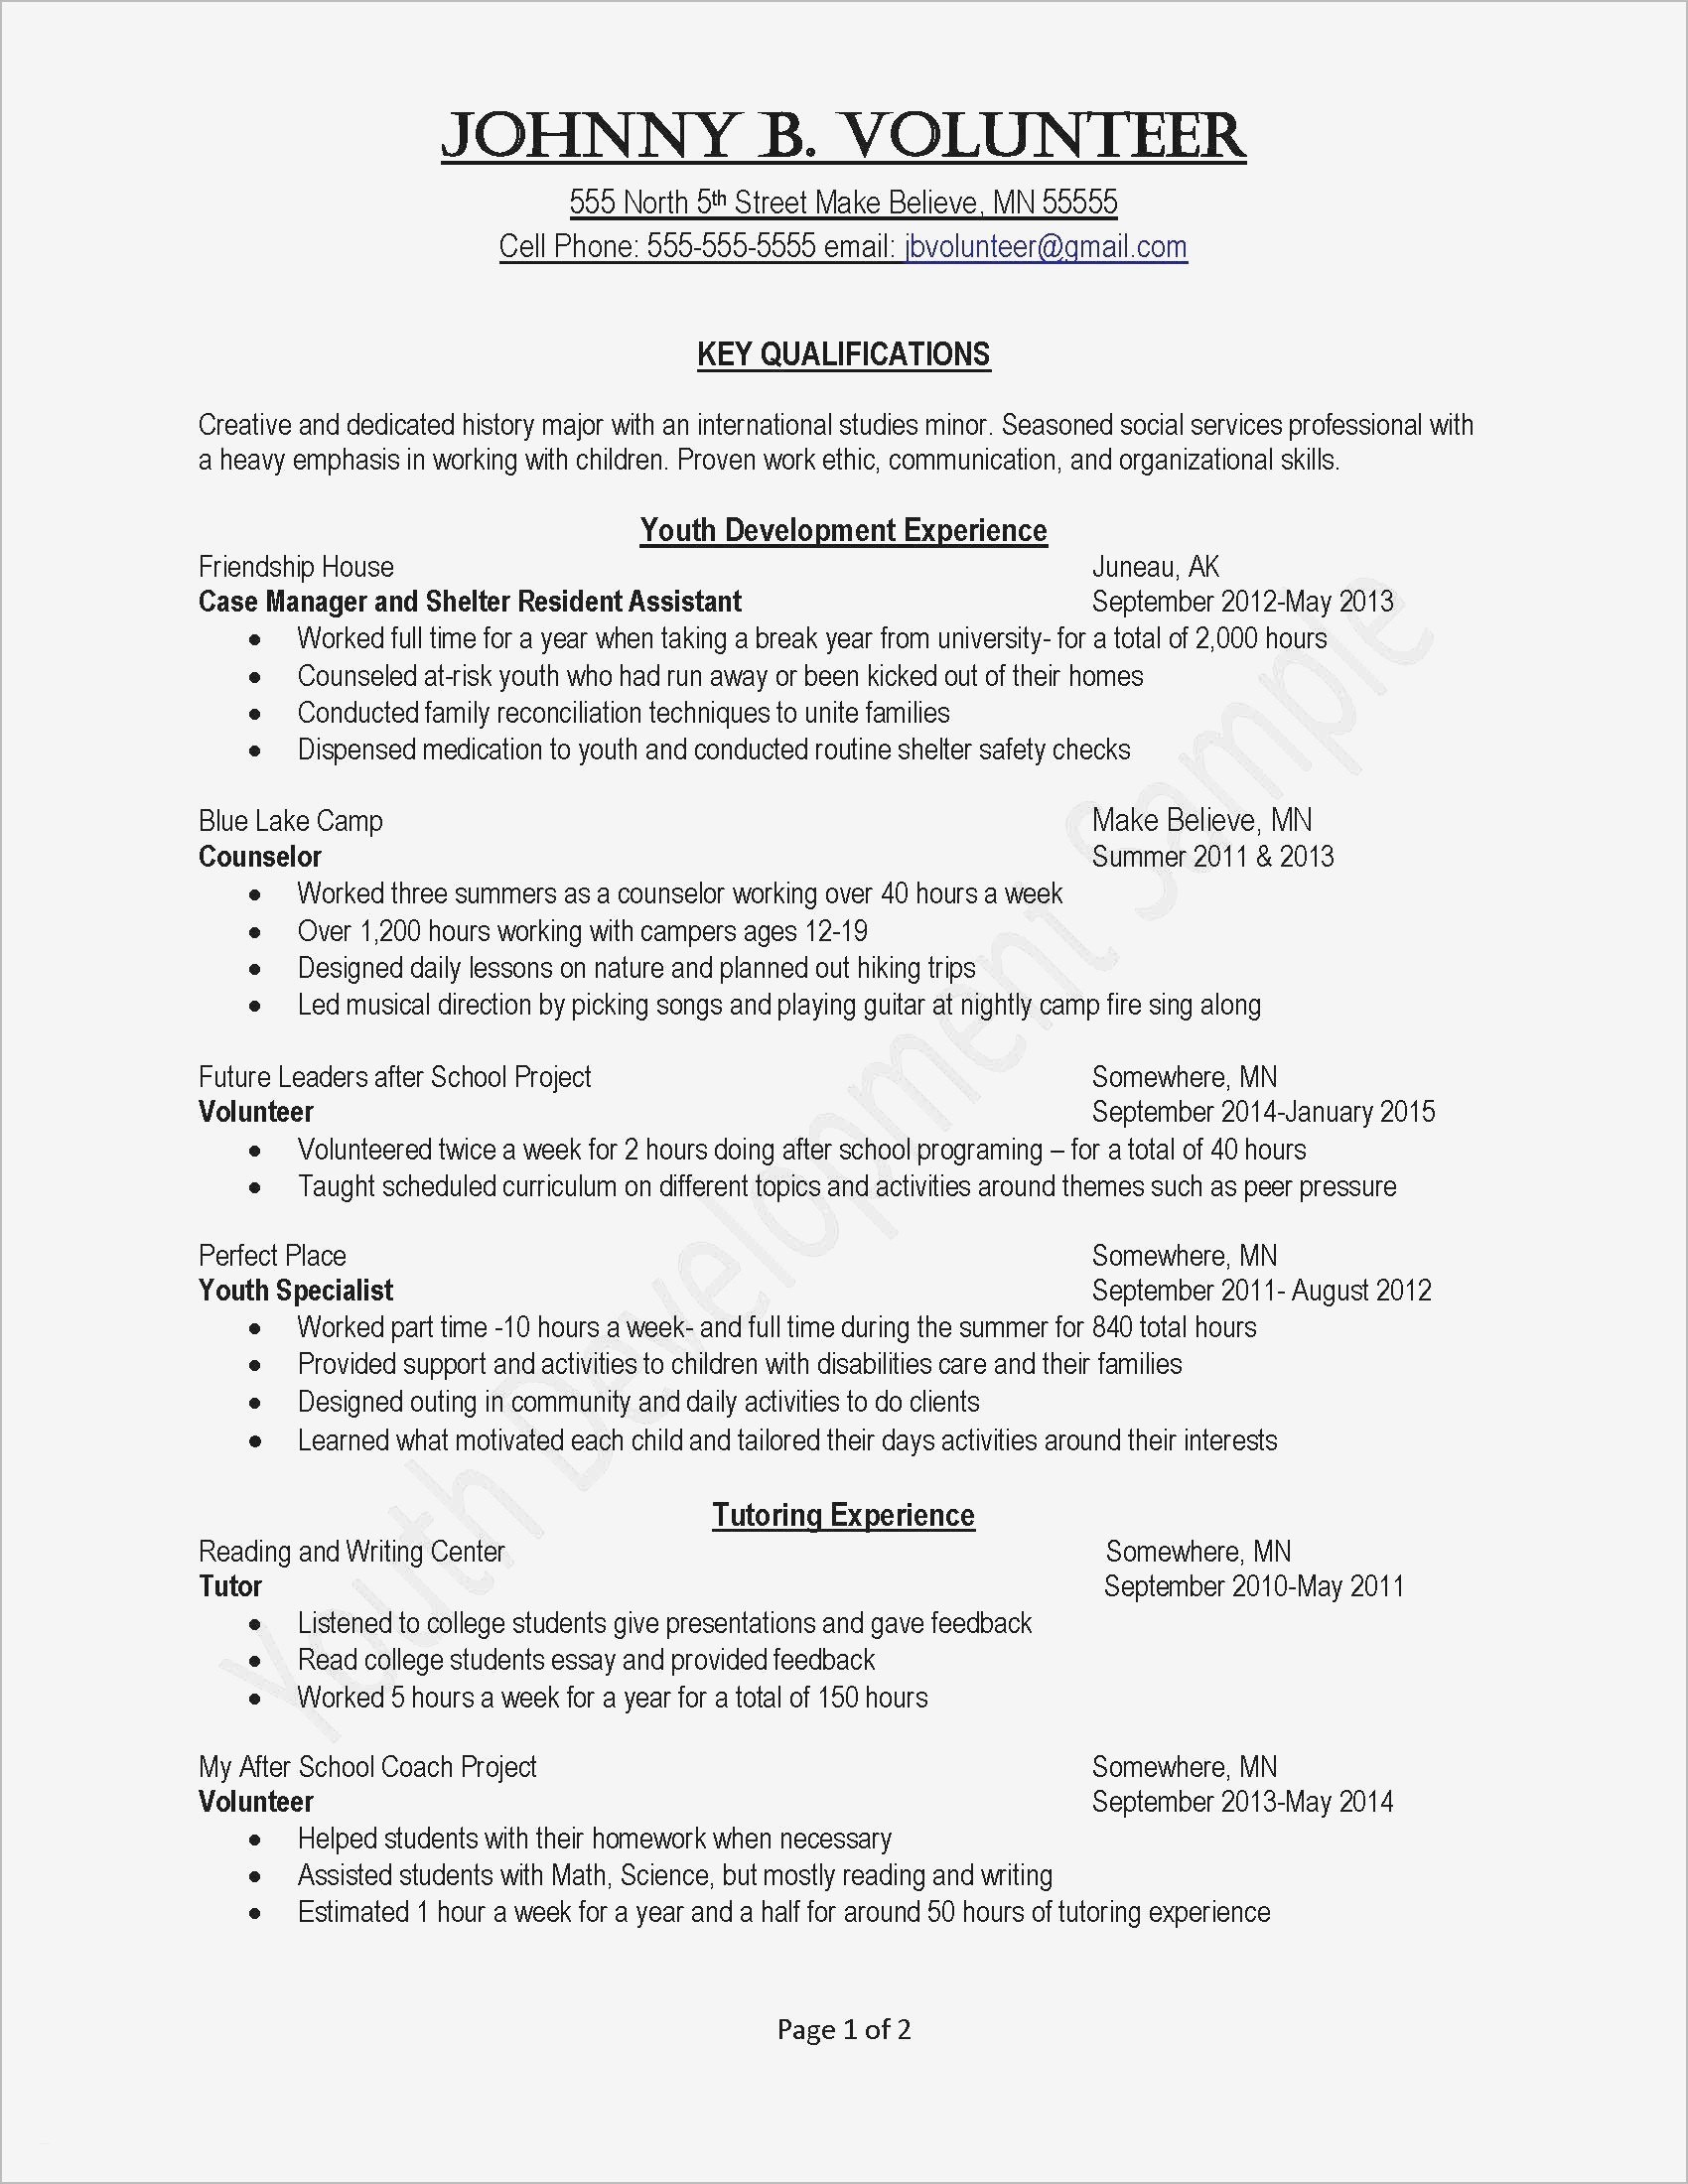 Draft Cover Letter Template Collection Letter Template Collection